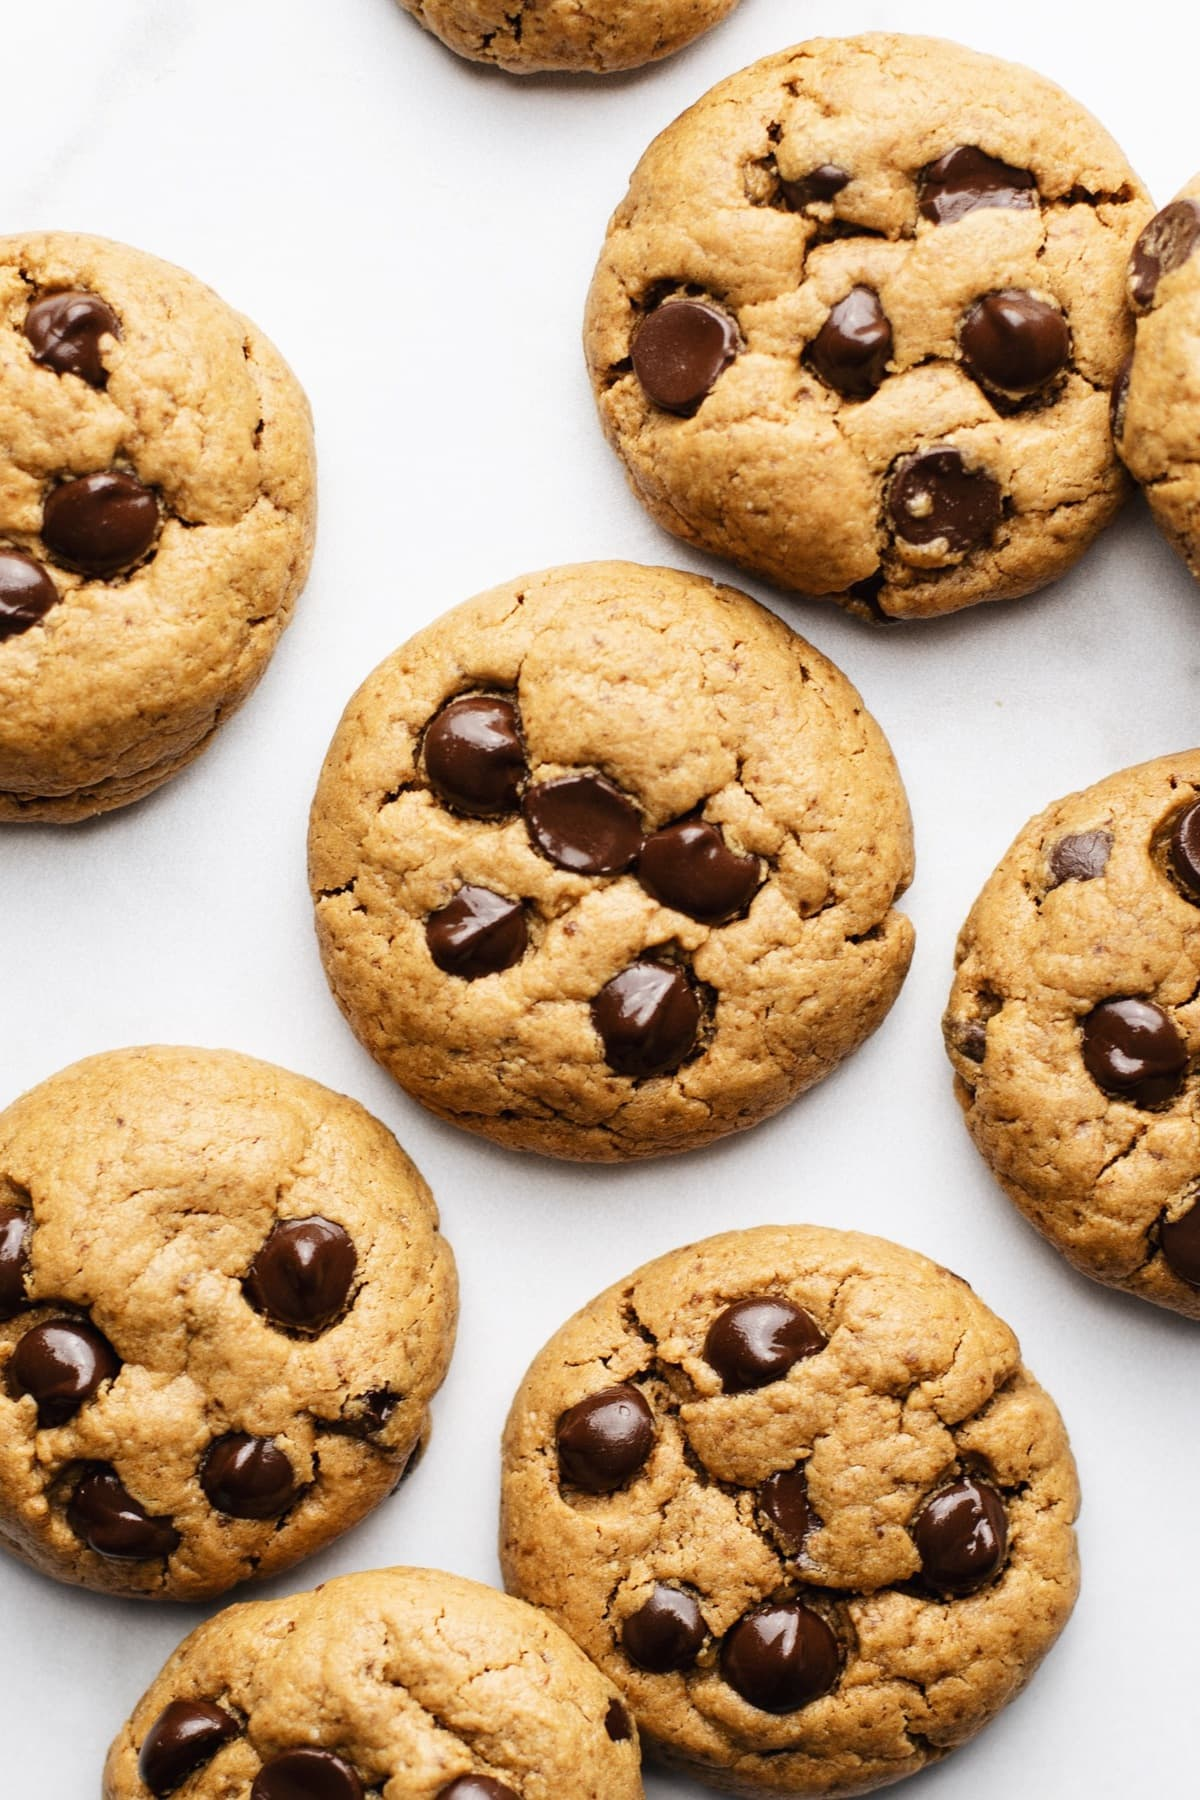 Flourless chocolate chip cookies arranged on a white counter.